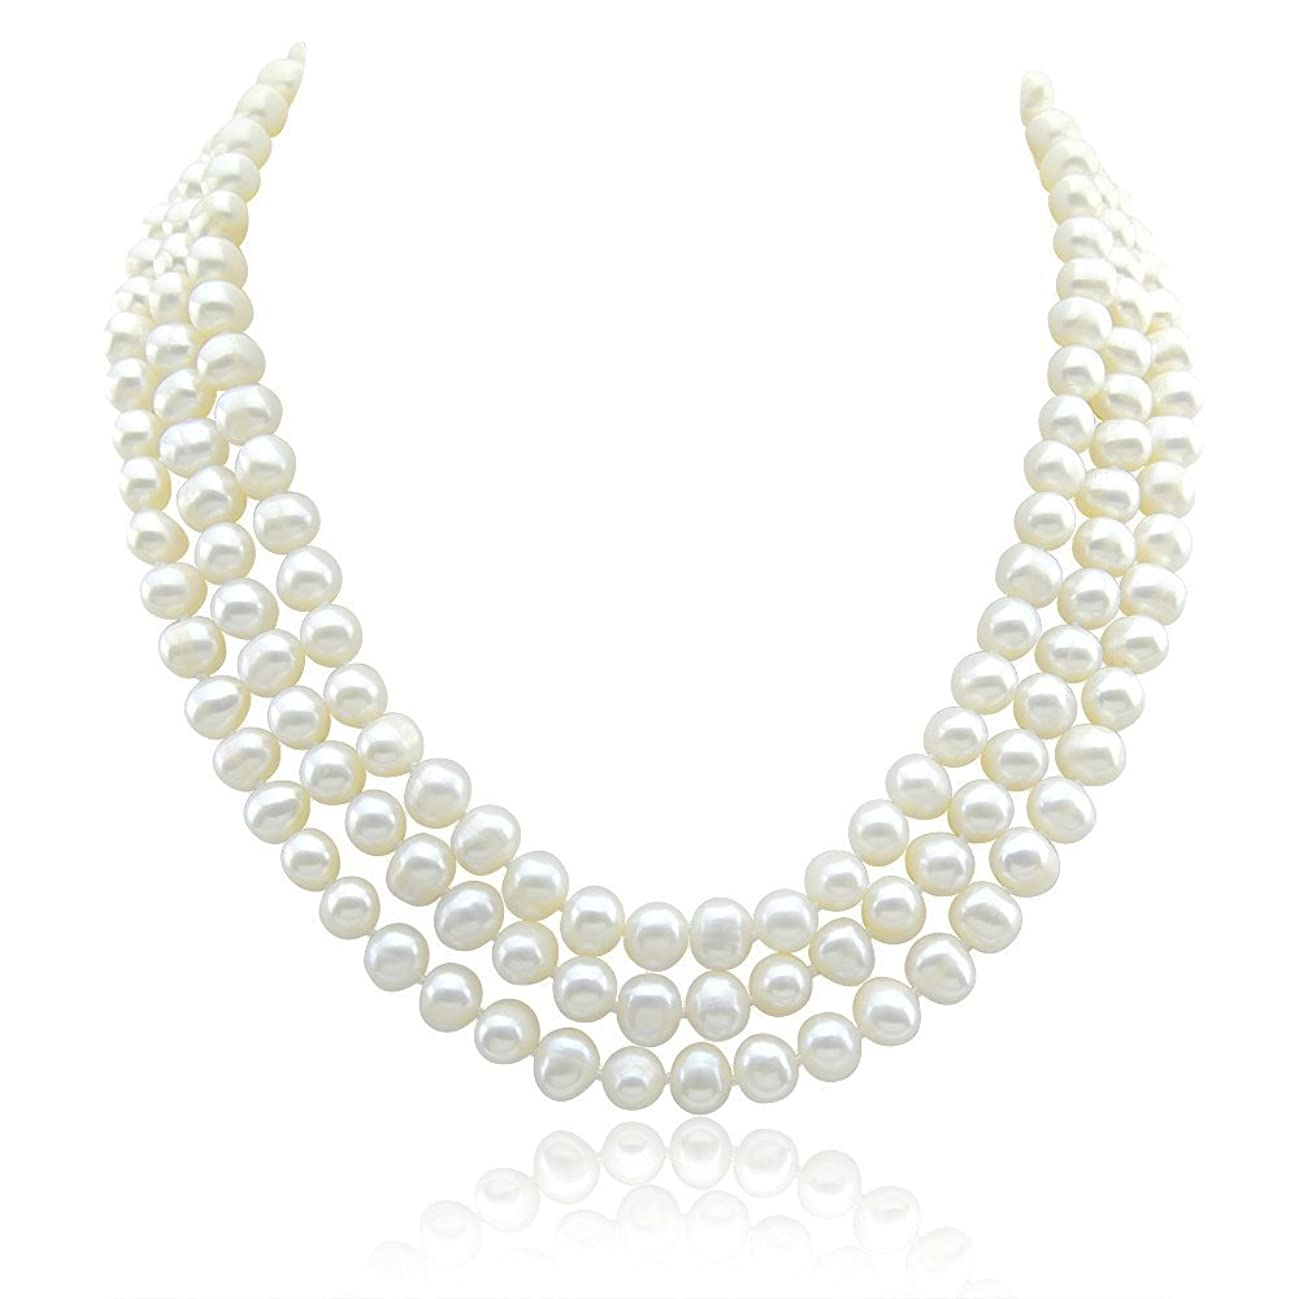 3-row White A Grade Freshwater Cultured Pearl Necklace (6.5-7.5 mm) With rhodium plated base metal Clasp, 16.5